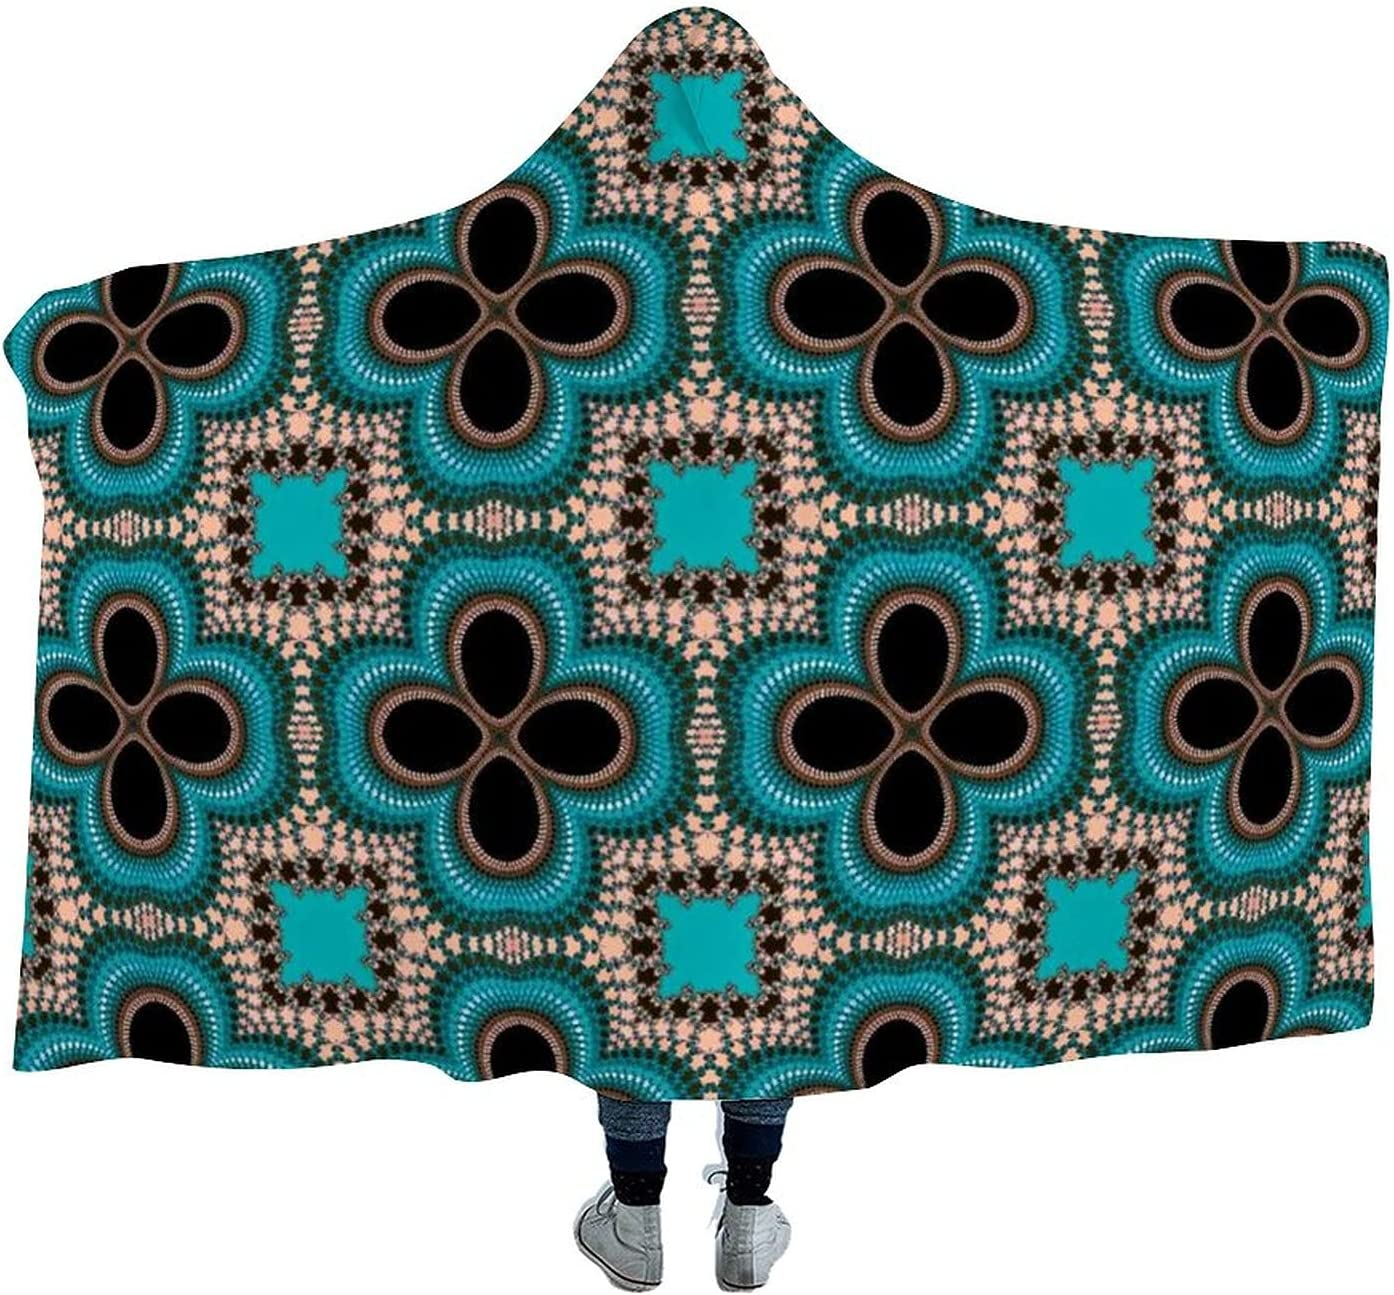 Retro Graphics Bombing free shipping Wearable Velvet Hooded Super Throw Blanket Soft Max 68% OFF